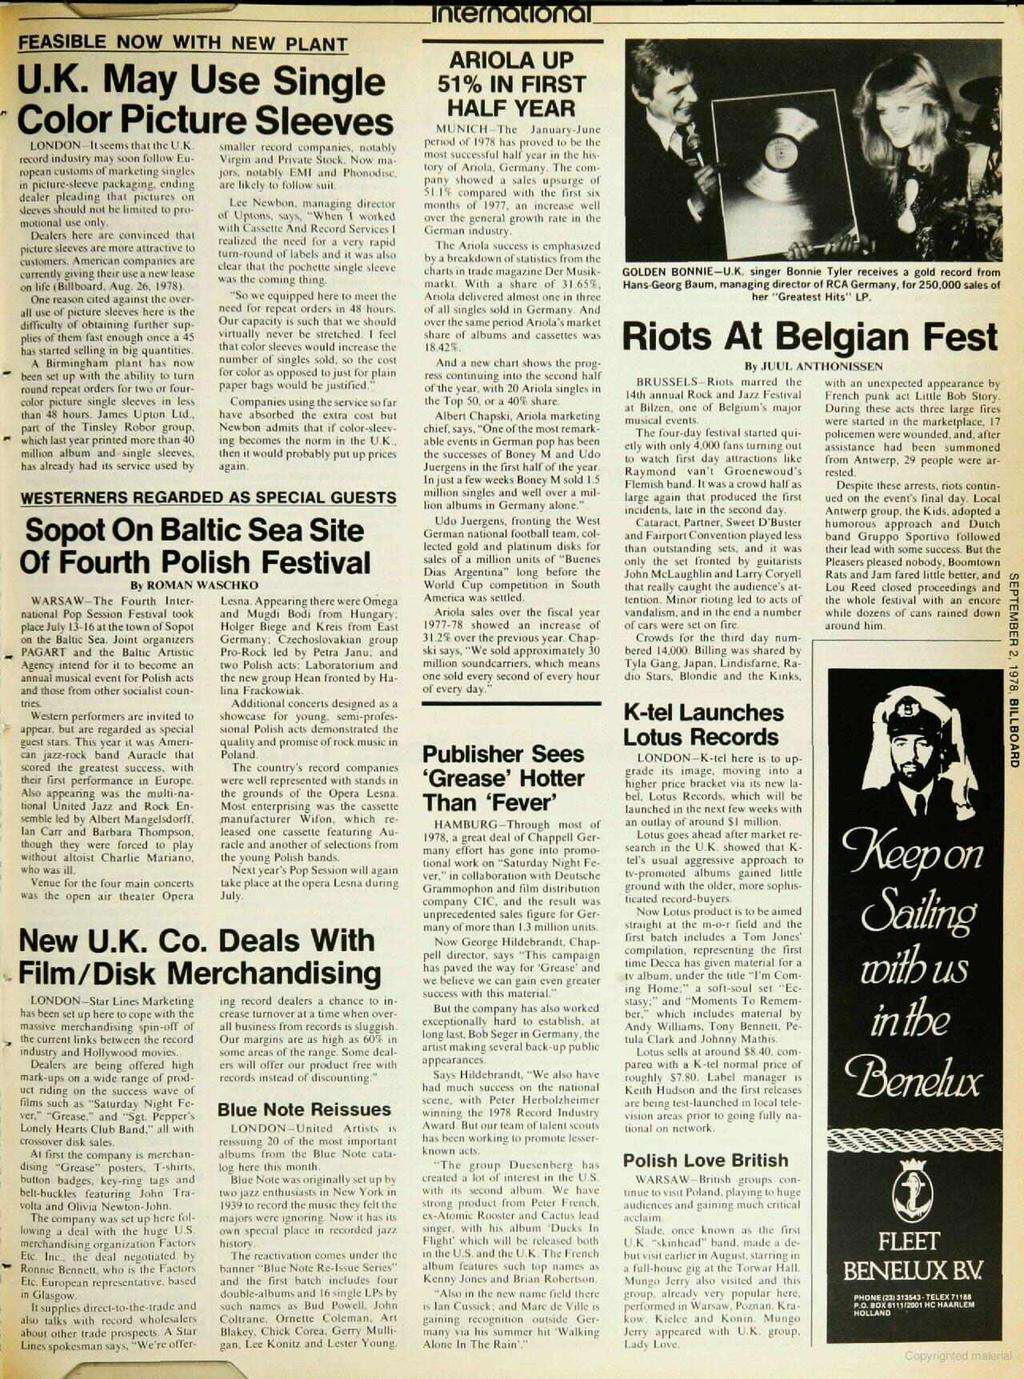 I A Billboard Publication The International Music Record Tape Little Things She Needs Samara 10b Black Newsweekly Sept 2 1978 1 95 U S Two Sections Section Pdf